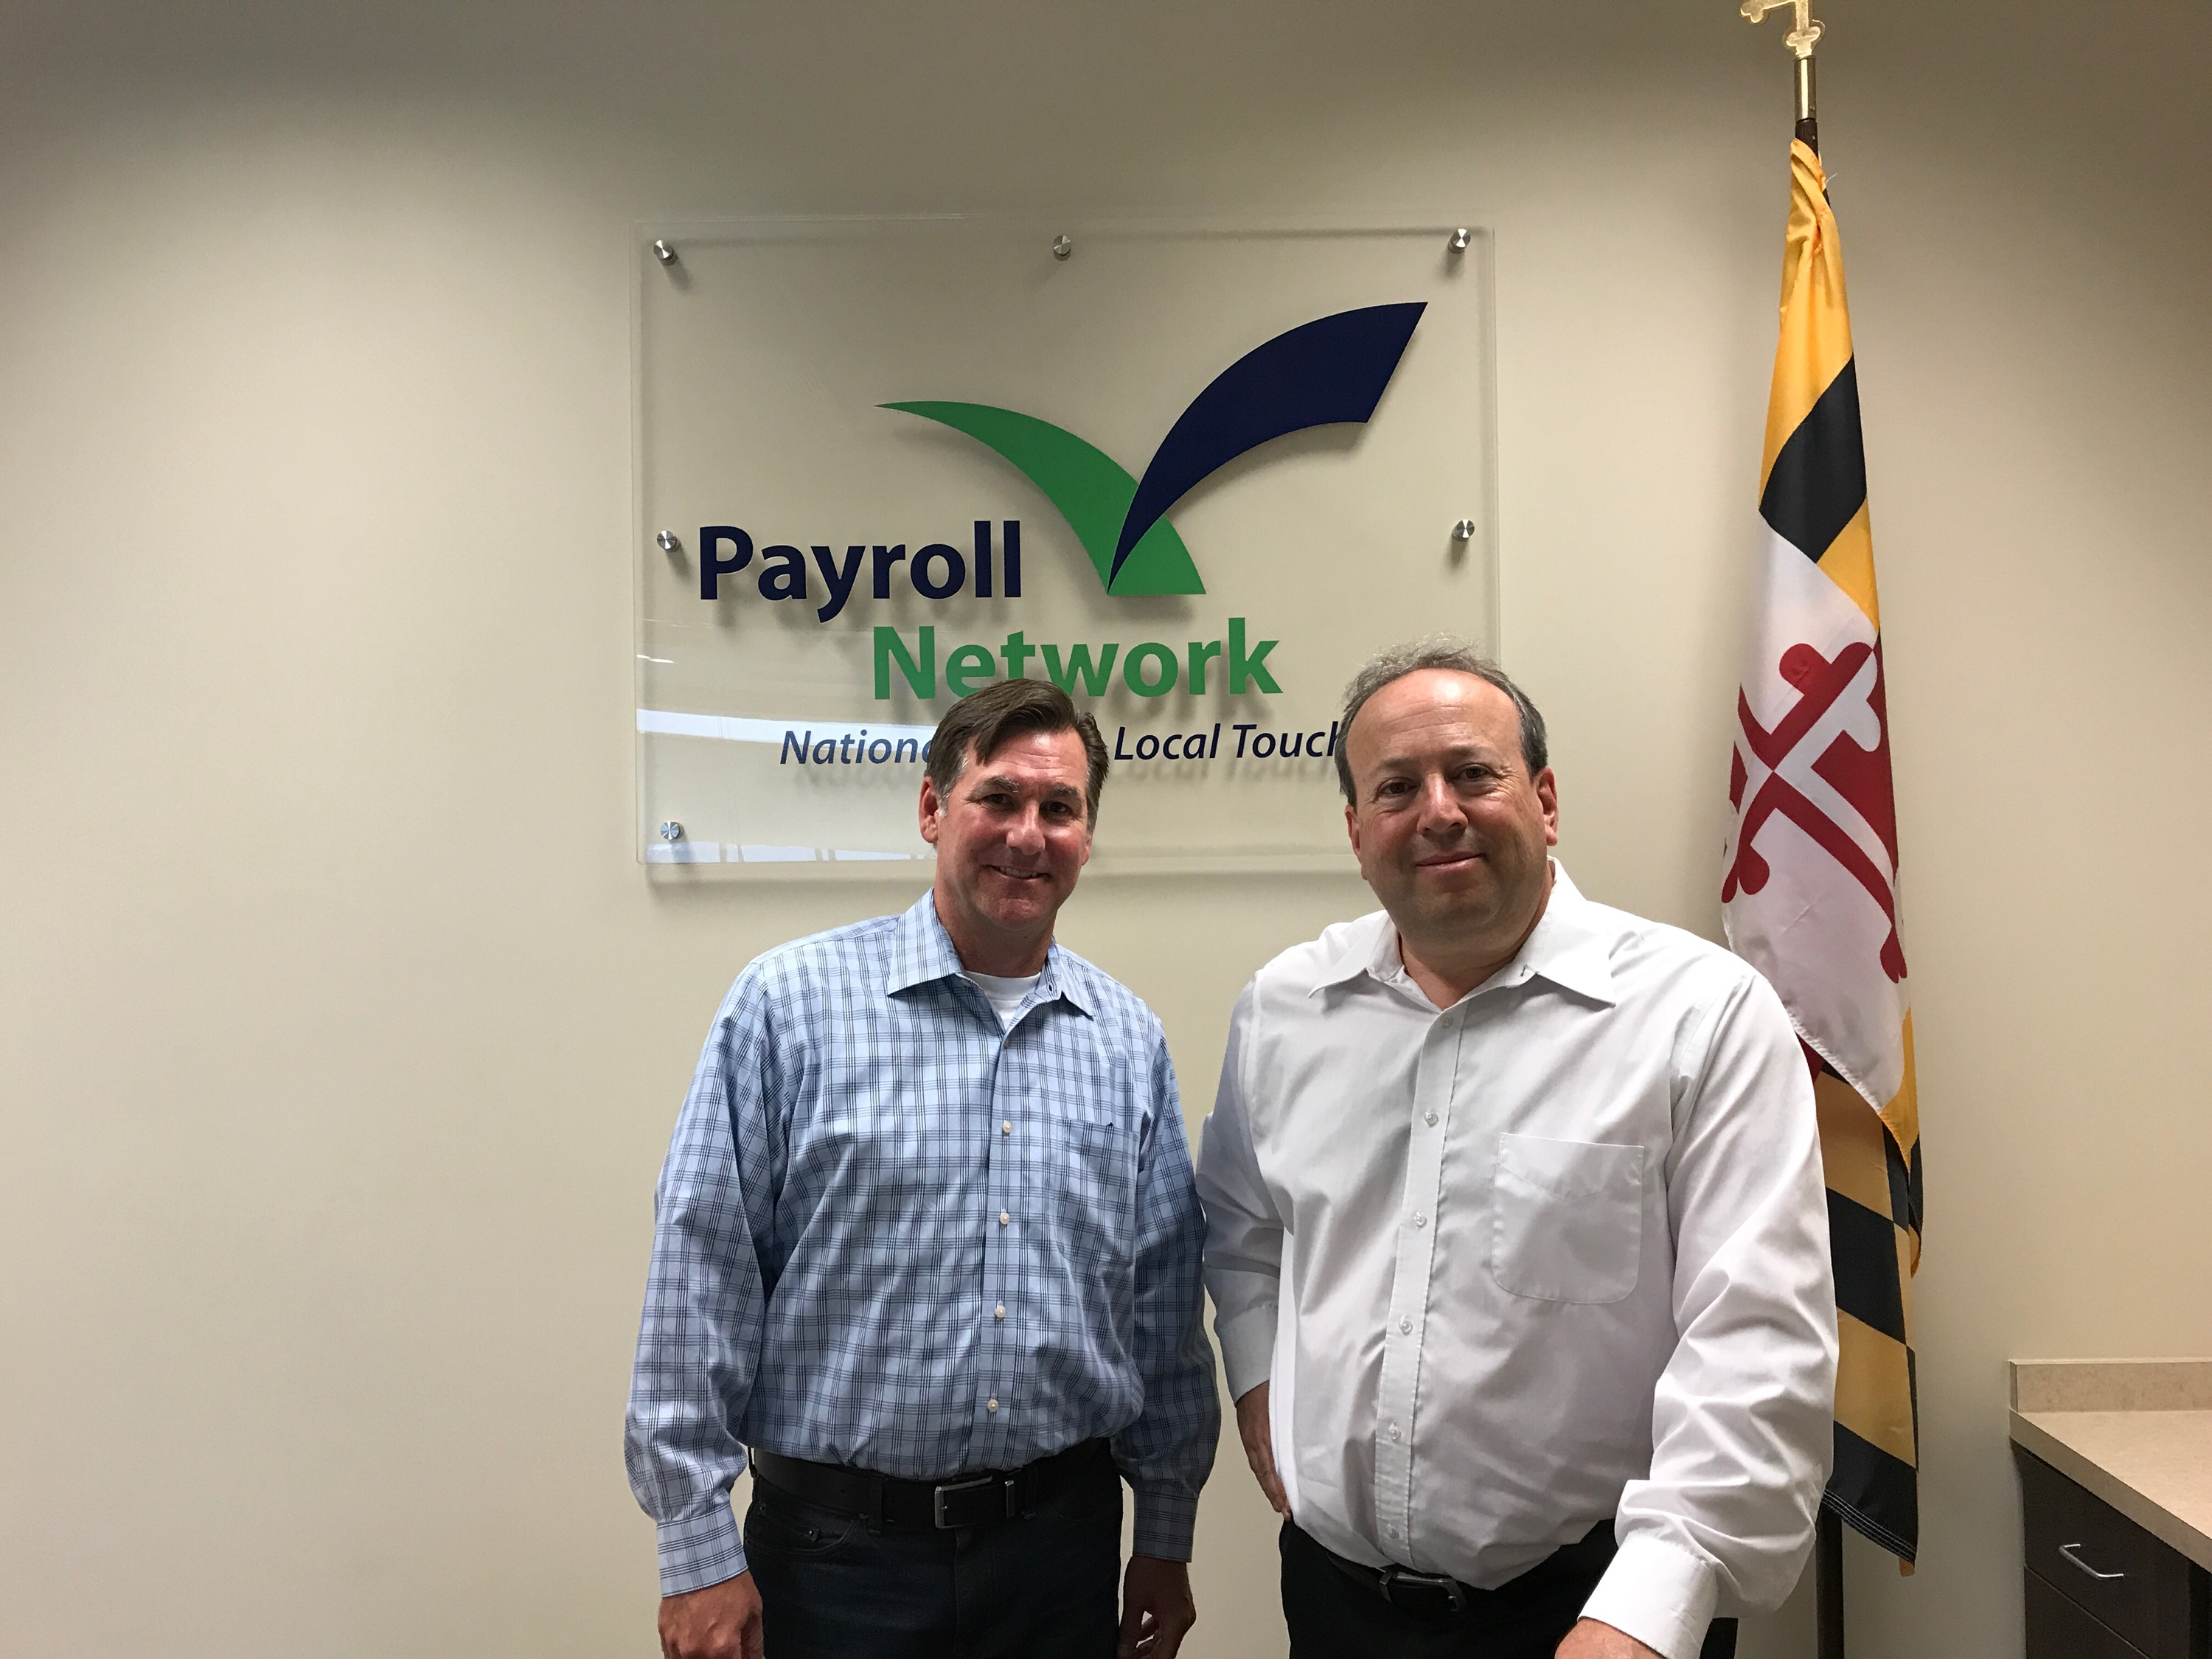 013. Payroll Network's Joe Young